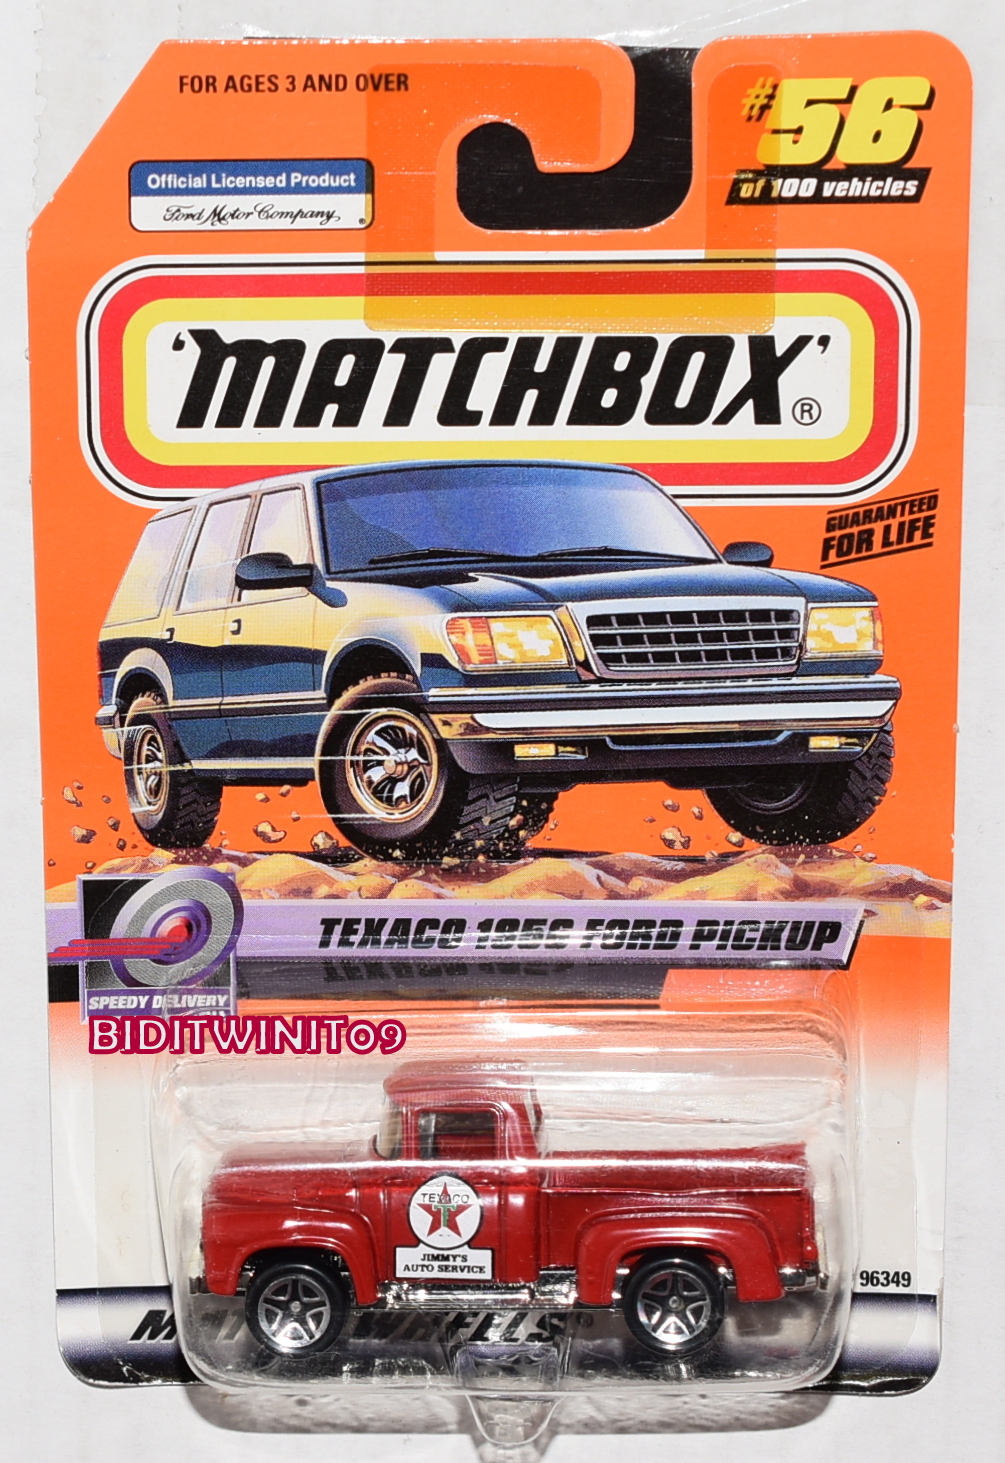 MATCHBOX 2000 TEXACO 1956 FORD PICKUP SPEEDY DELIVERY